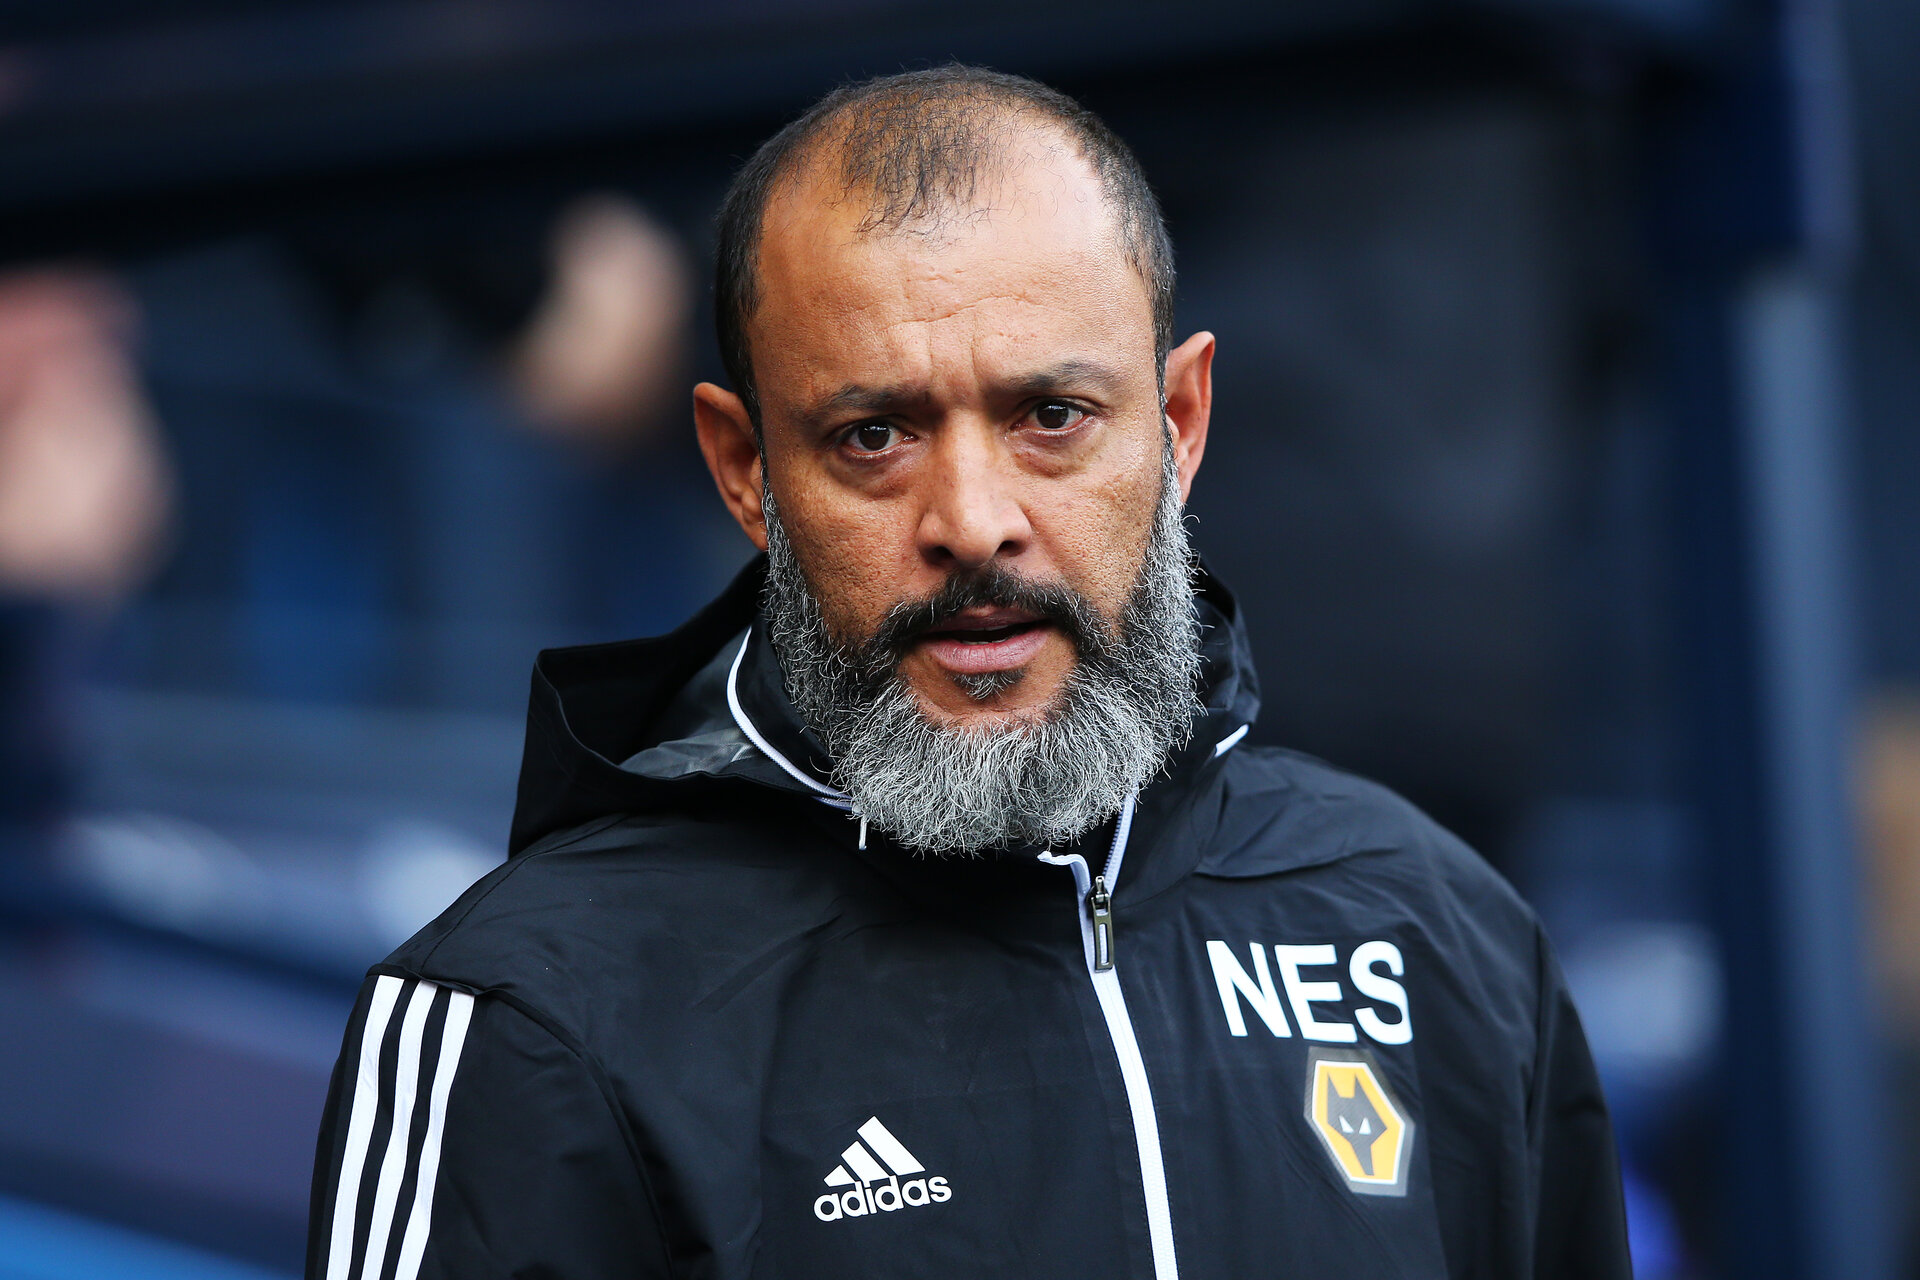 MANCHESTER, ENGLAND - OCTOBER 06: Nuno Espirito Santo, Manager of Wolverhampton Wanderers looks on prior to the Premier League match between Manchester City and Wolverhampton Wanderers at Etihad Stadium on October 06, 2019 in Manchester, United Kingdom. (Photo by Alex Livesey/Getty Images)